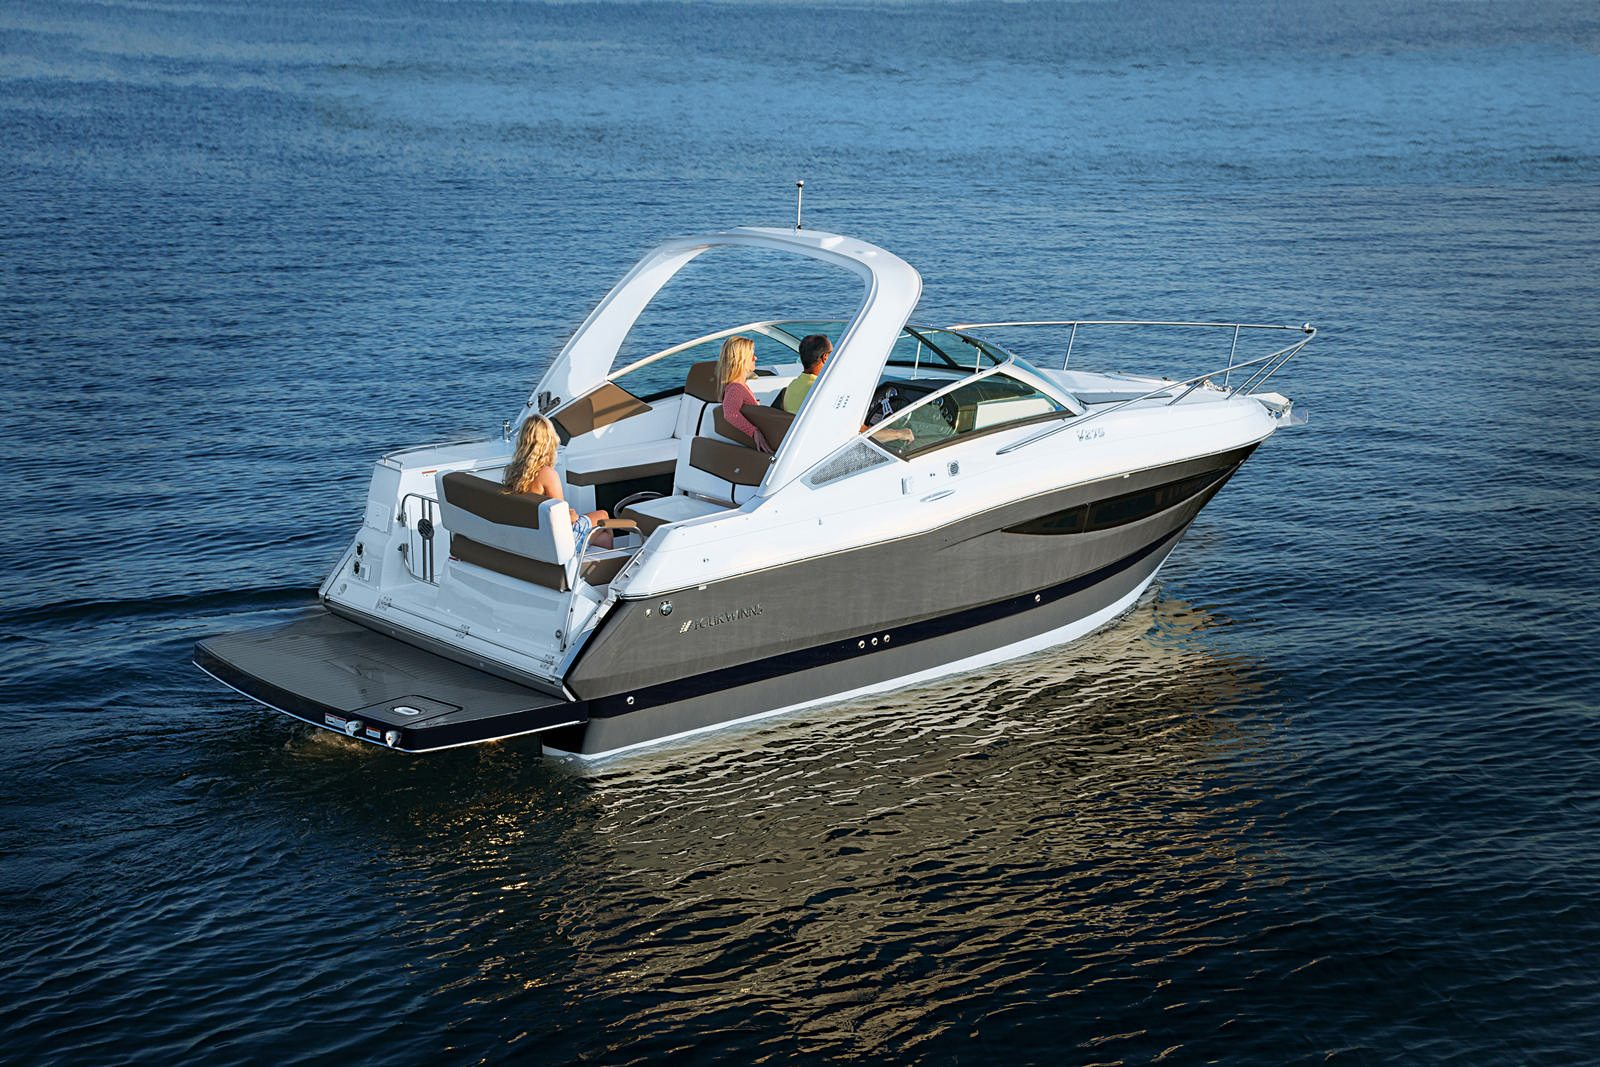 יאכטה לרישיון עוצמה ב' Four Winns V275 - Four Winns V275 - Stream Yachts